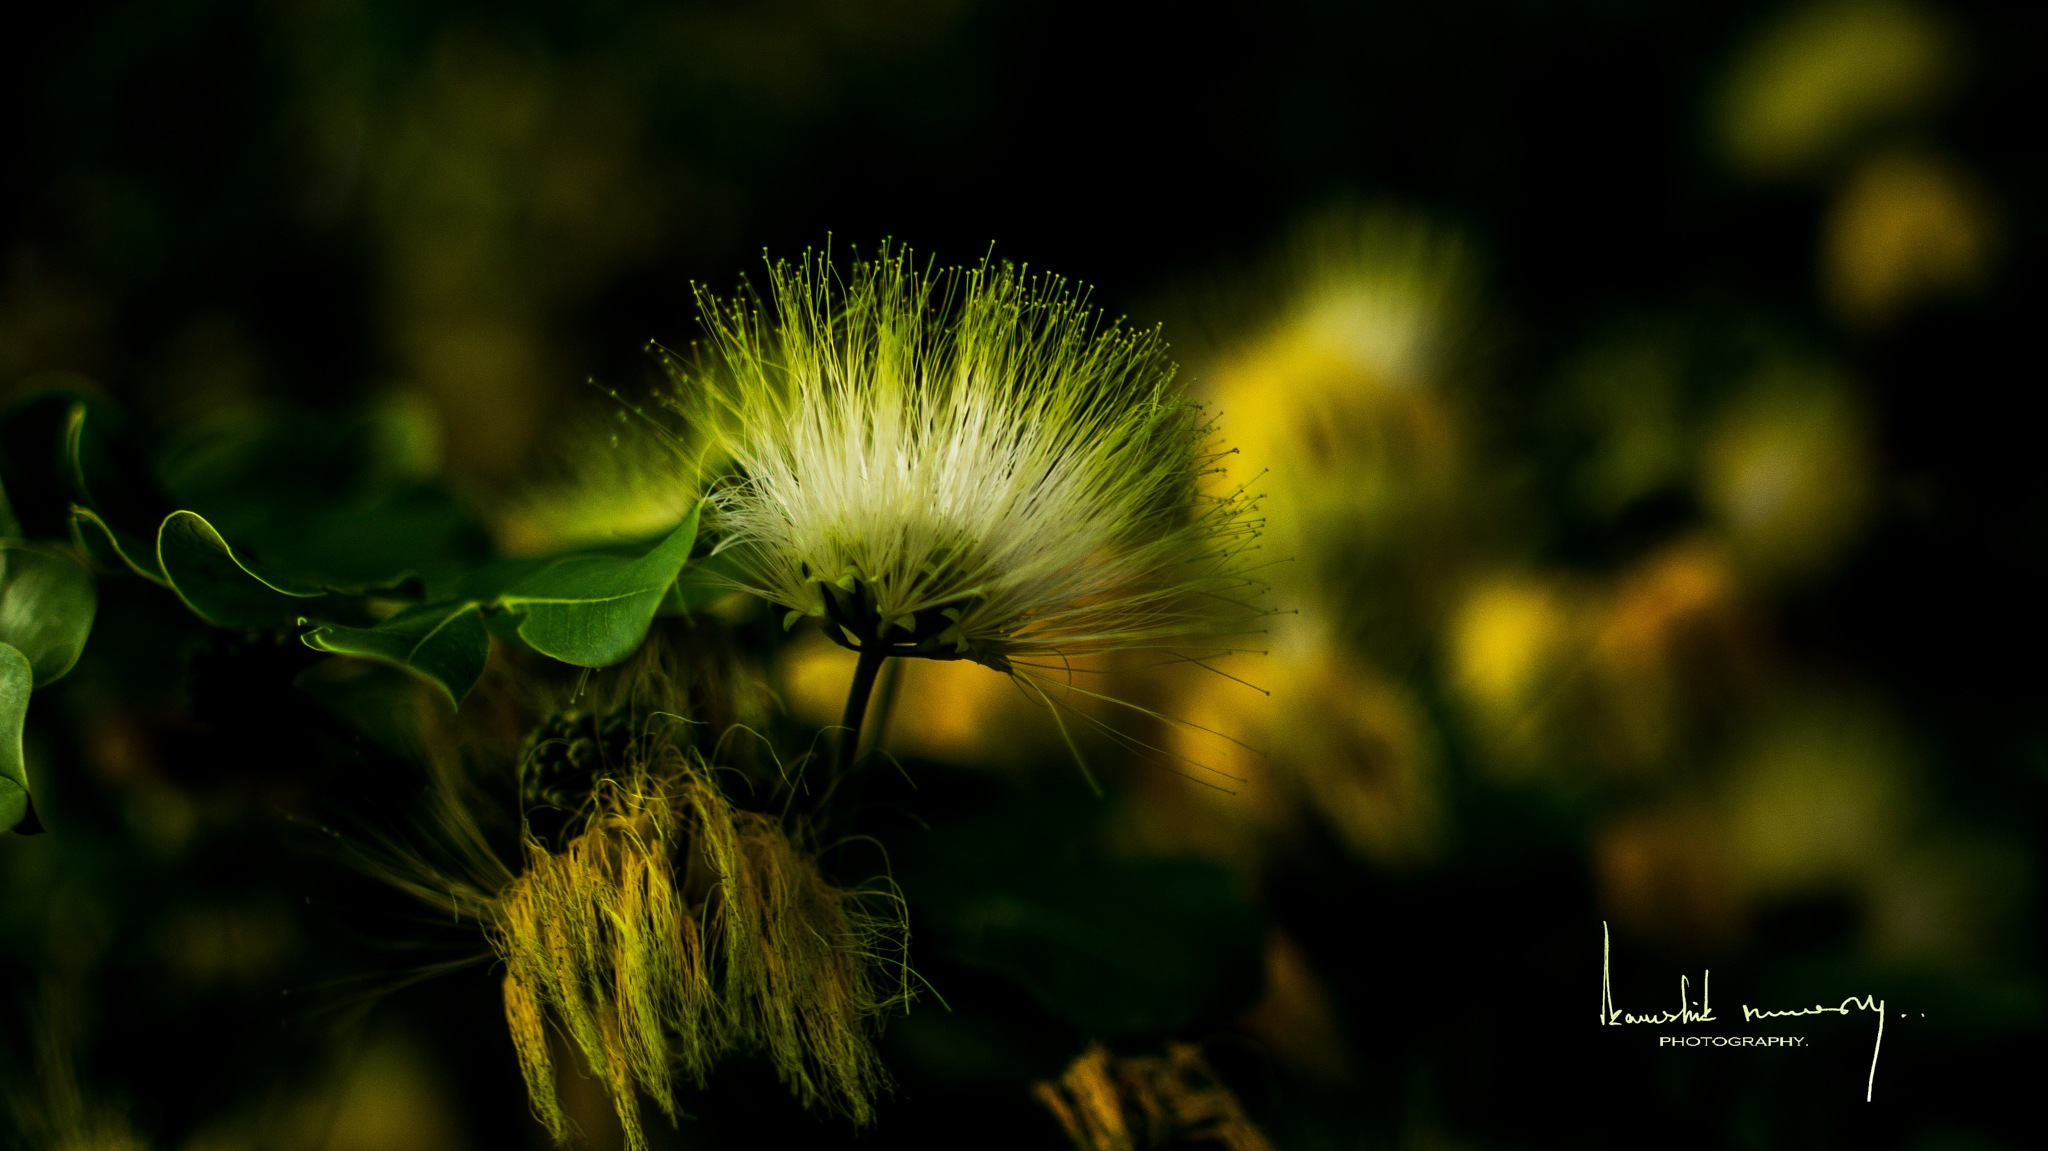 Green Flower Zoomed up by Kaushik Nandy